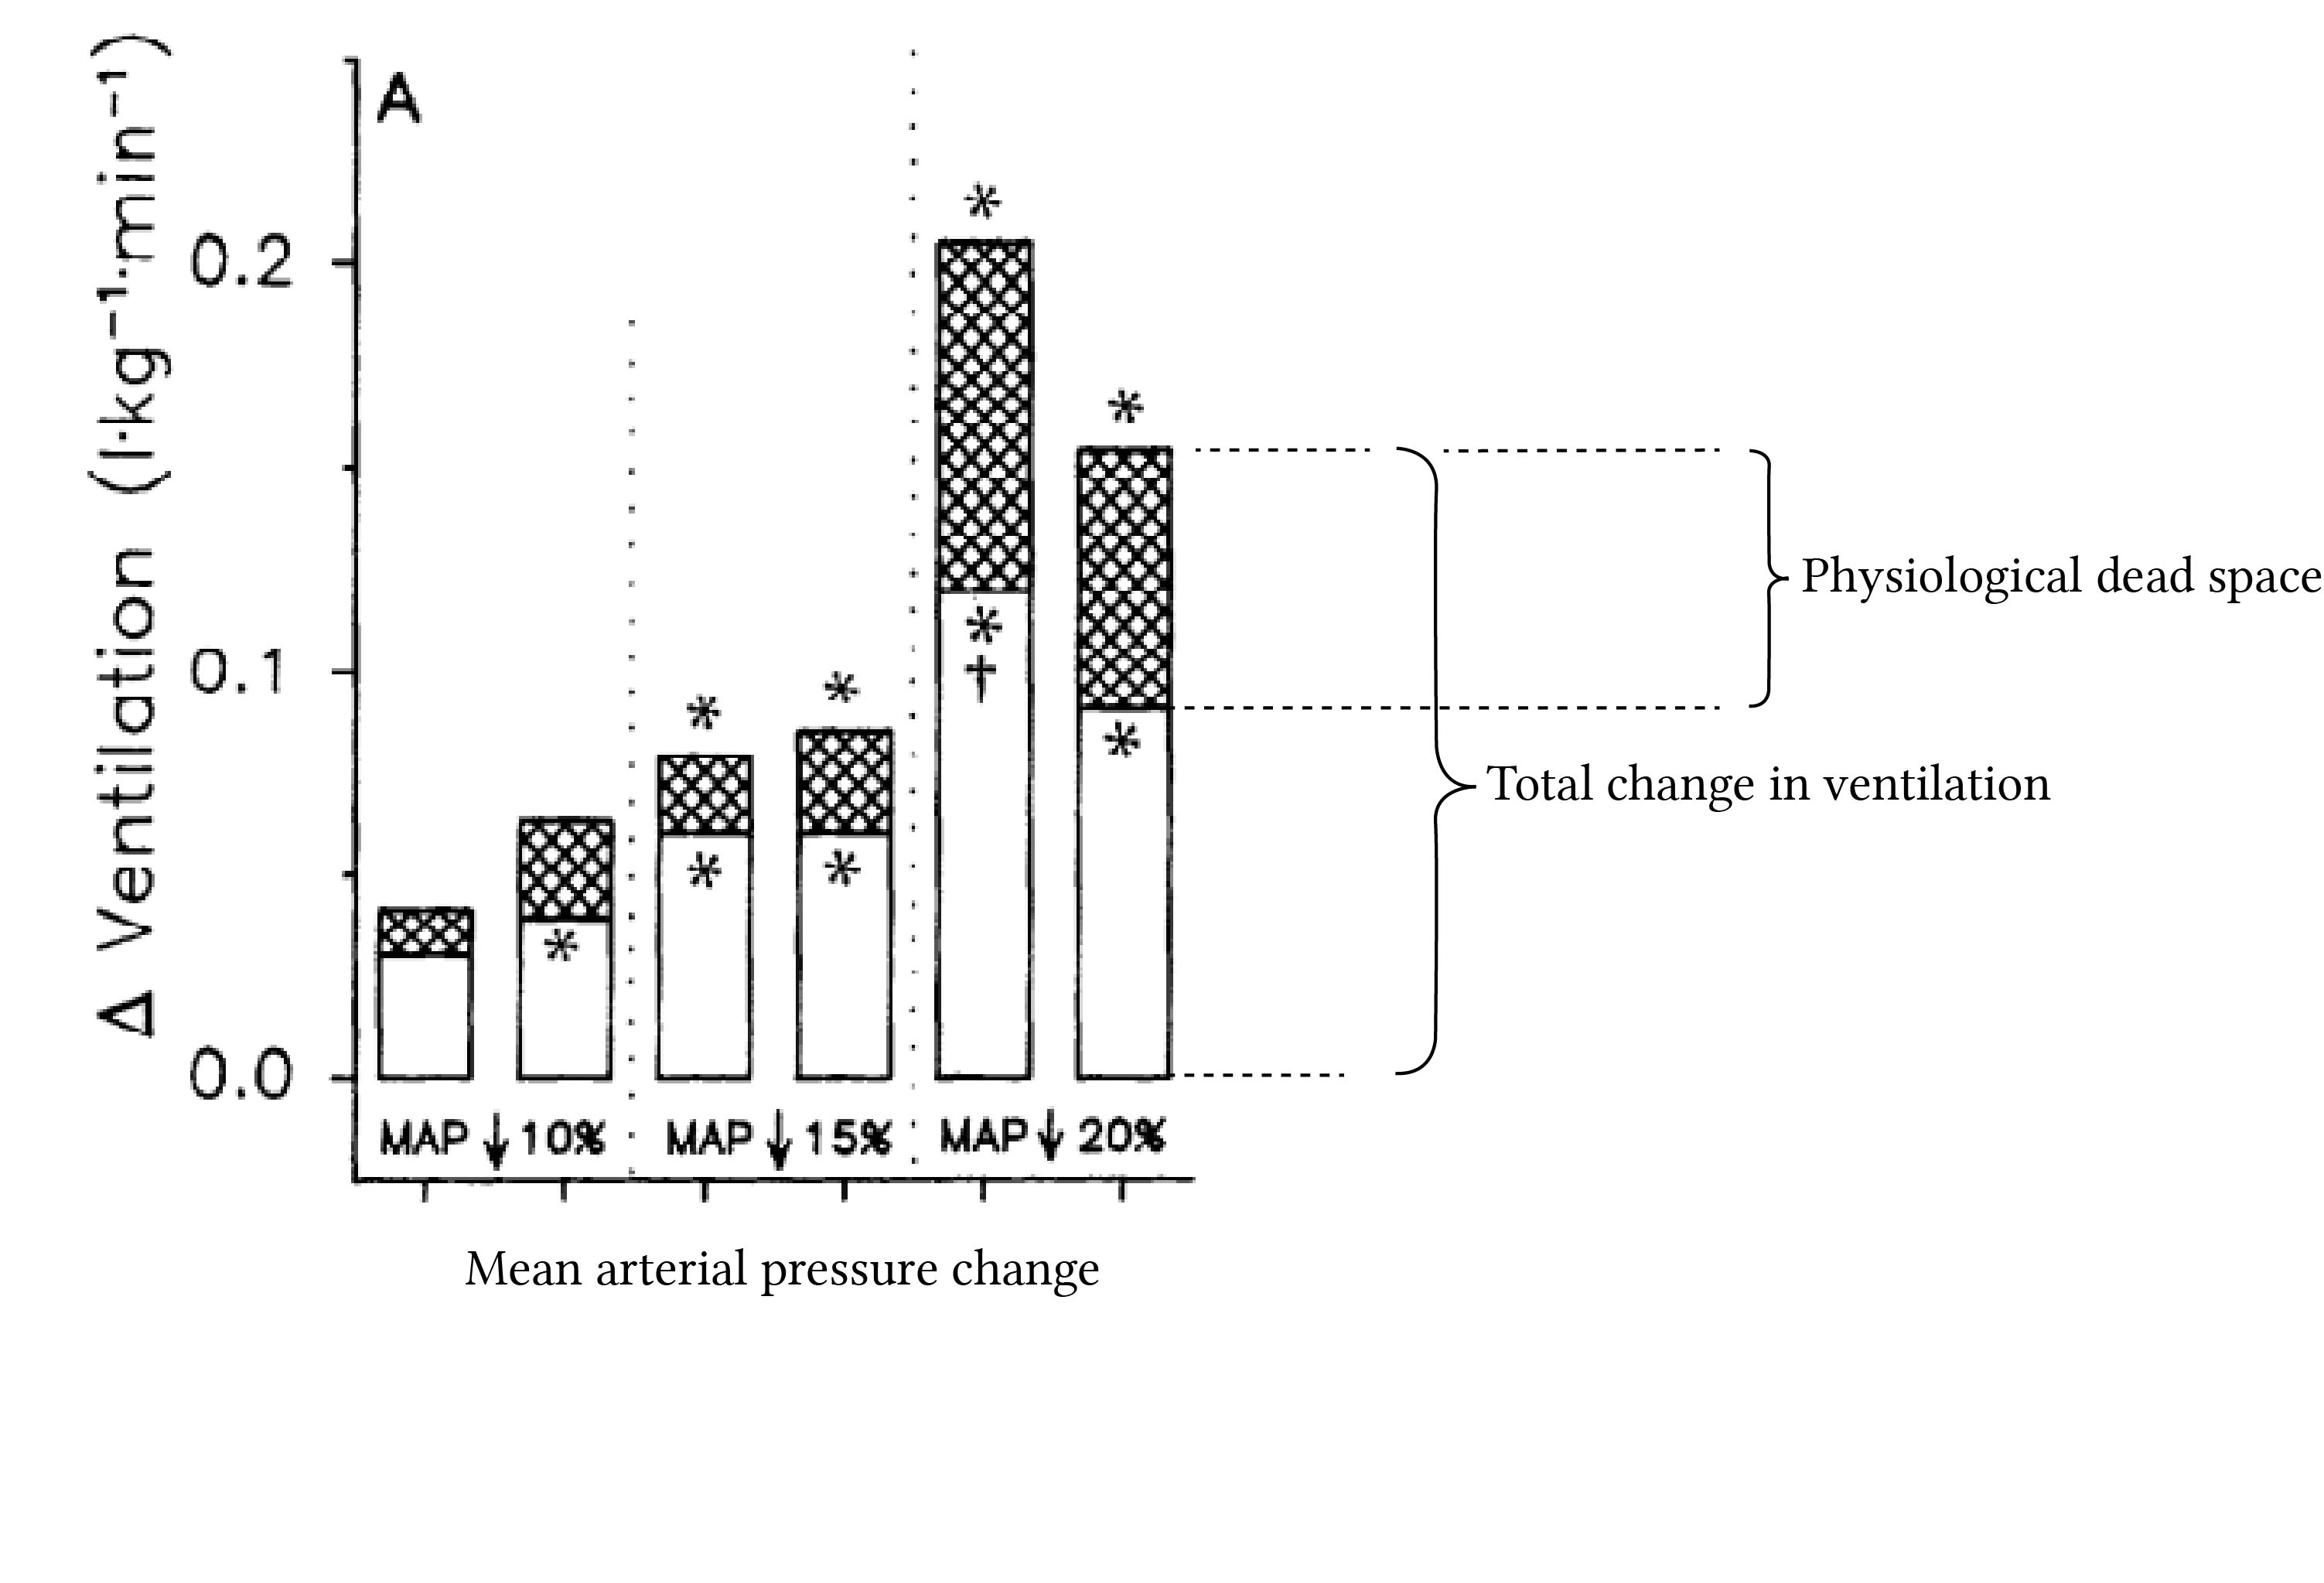 ventilatory response to hypotension from Ohtake et al, 1993